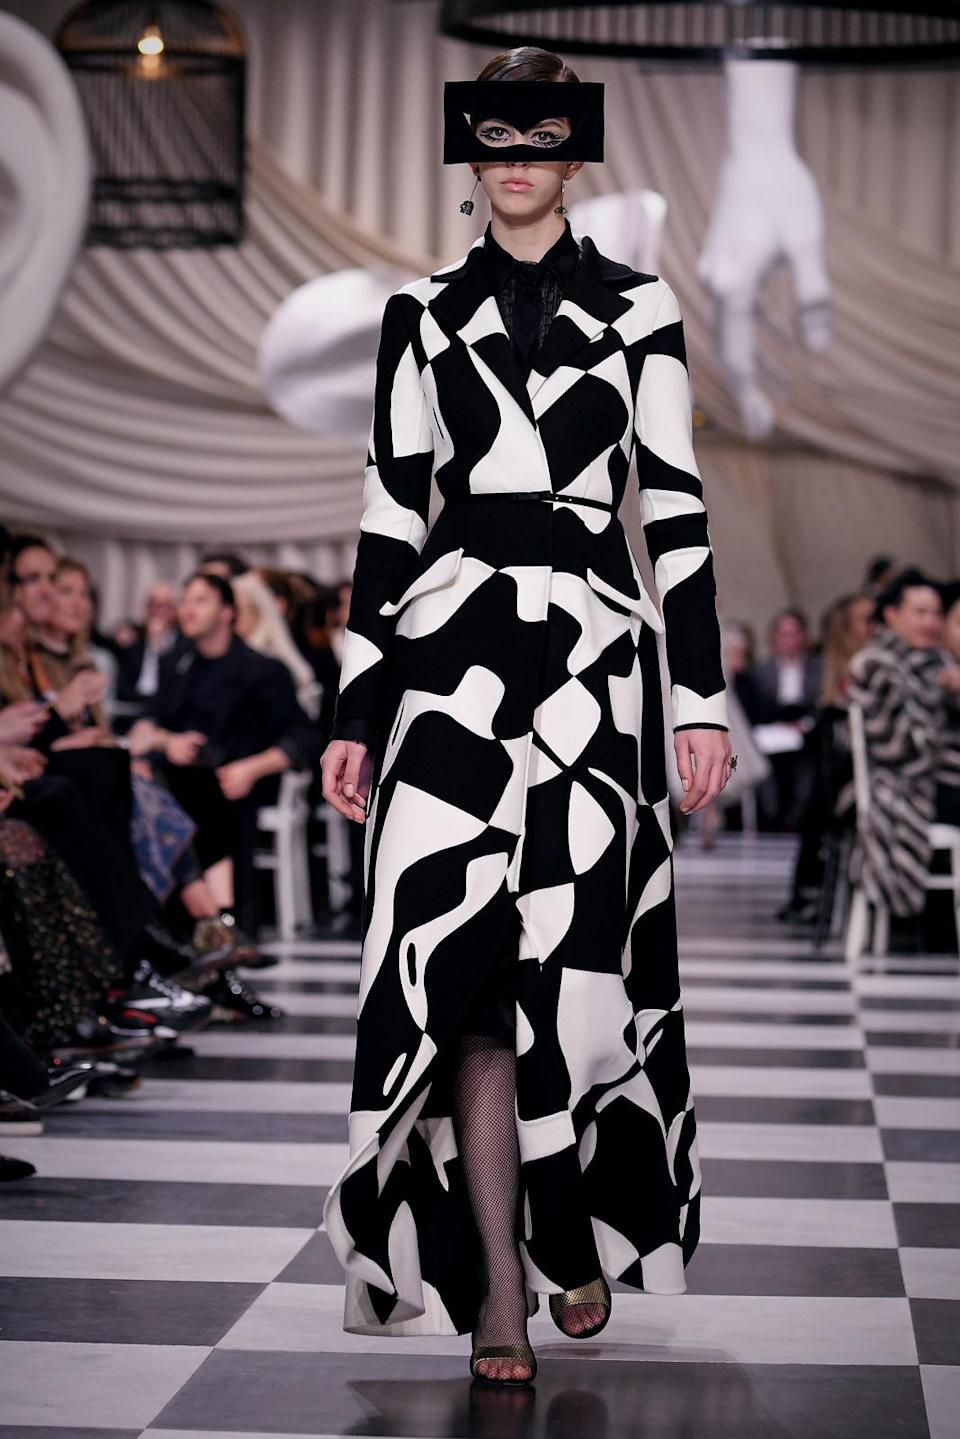 "<p>A model wears a black and white ""puzzle"" coat and cut-out mask from the Dior Haute Couture SS18 collection. (Photo: Getty) </p>"